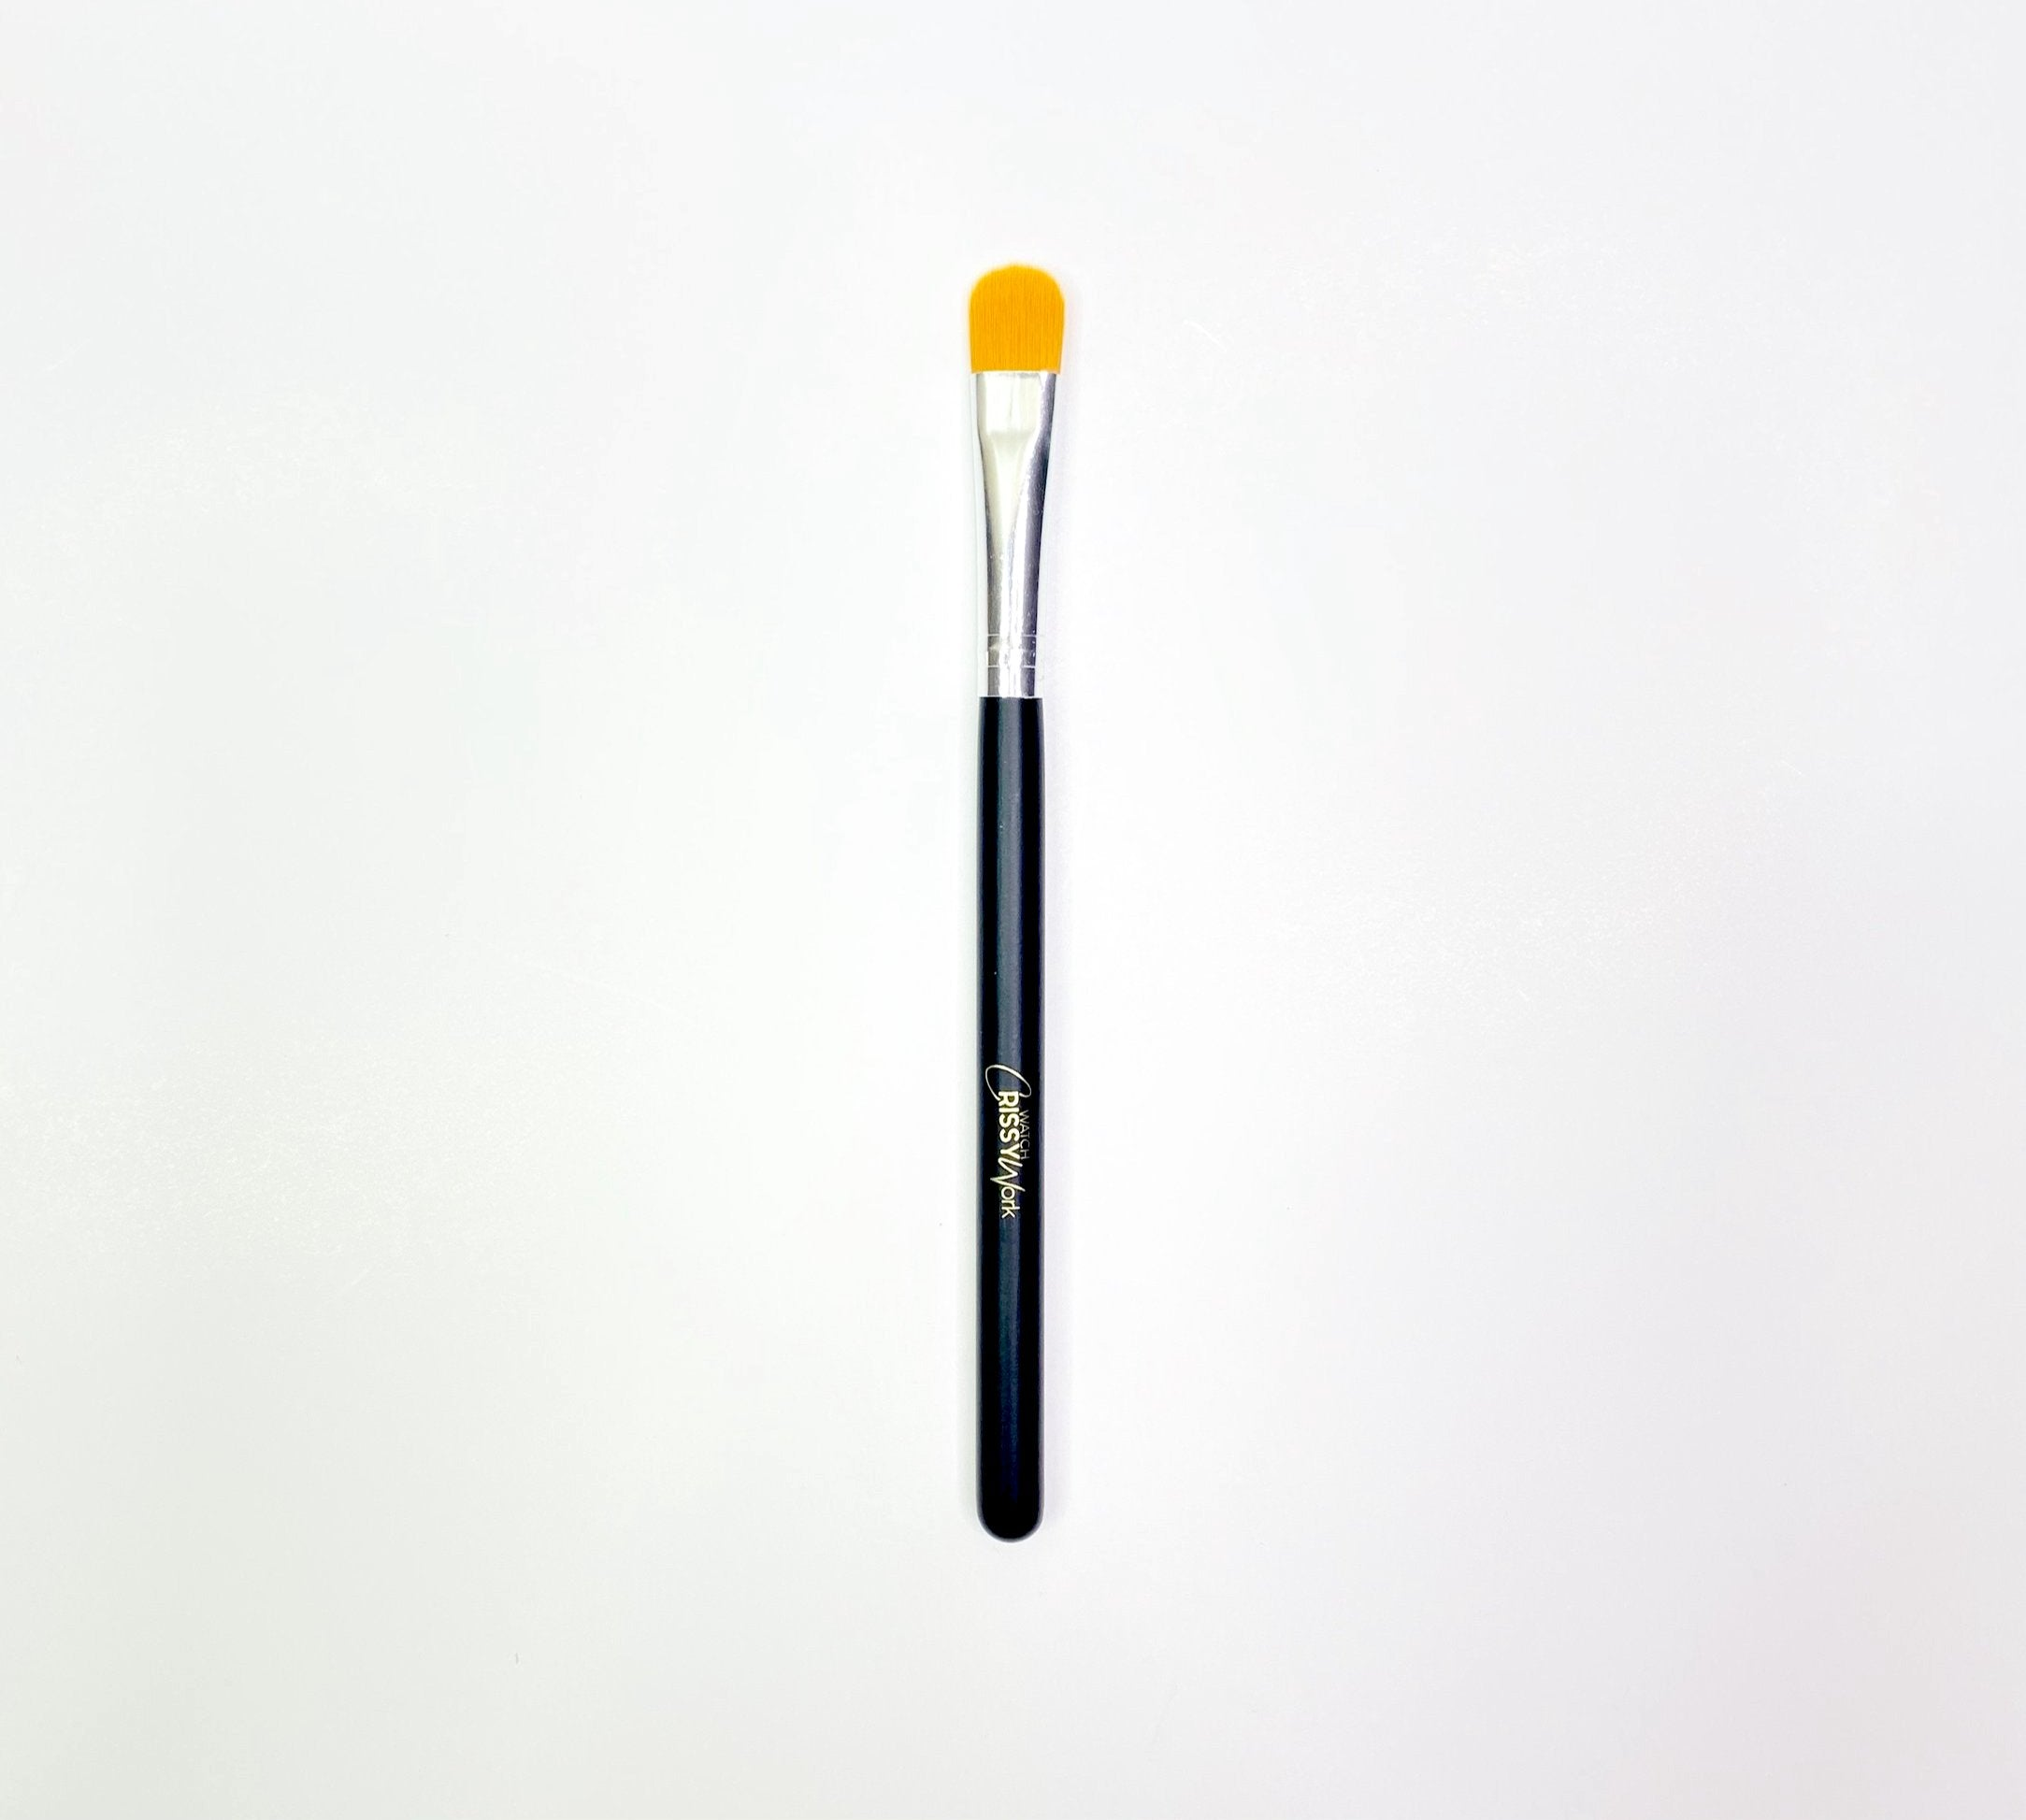 The Slice Concealer Brush